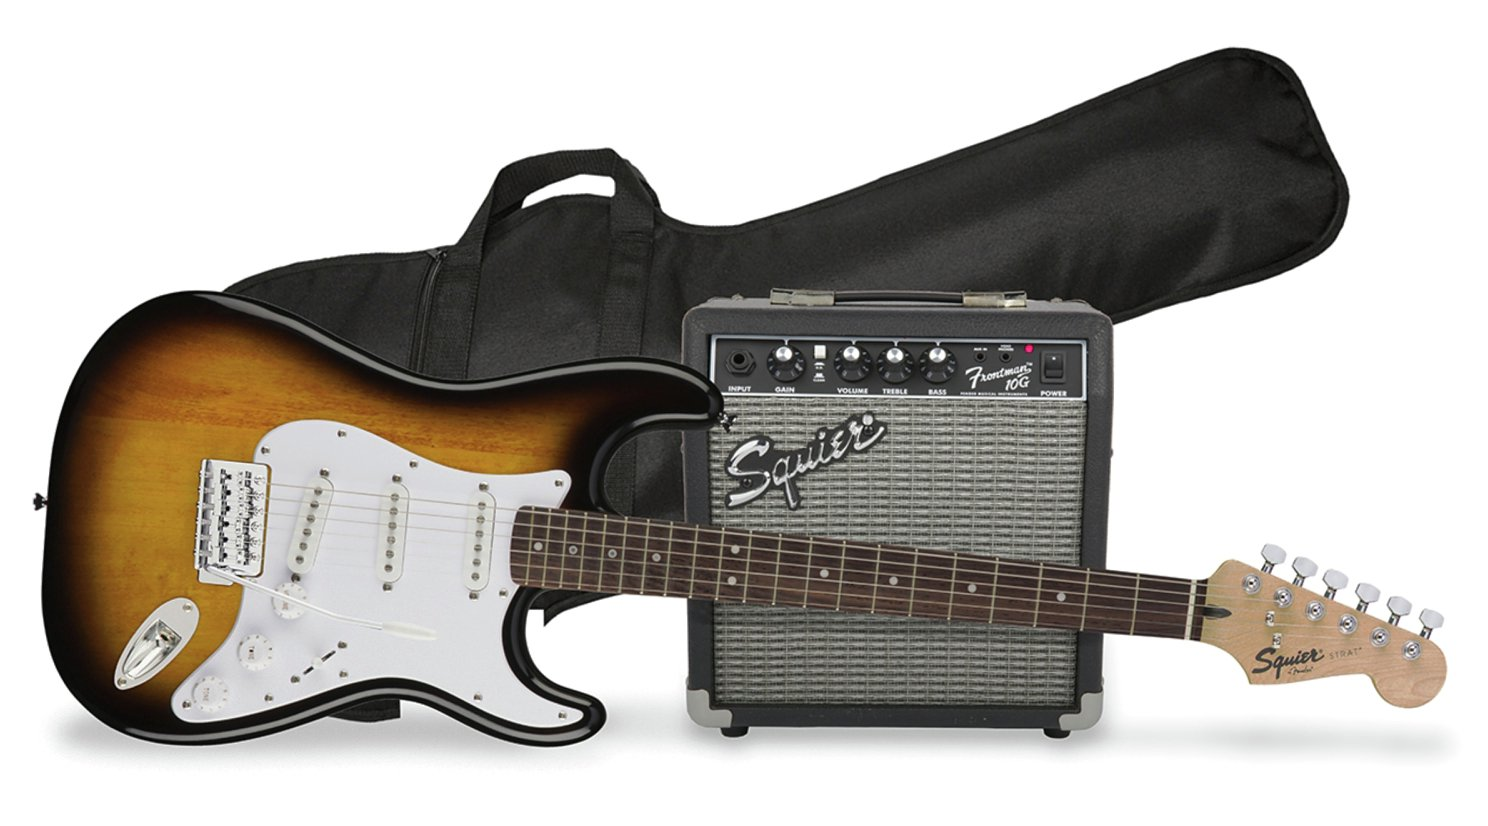 Squier By Fender Full Size Electric Guitar Pack